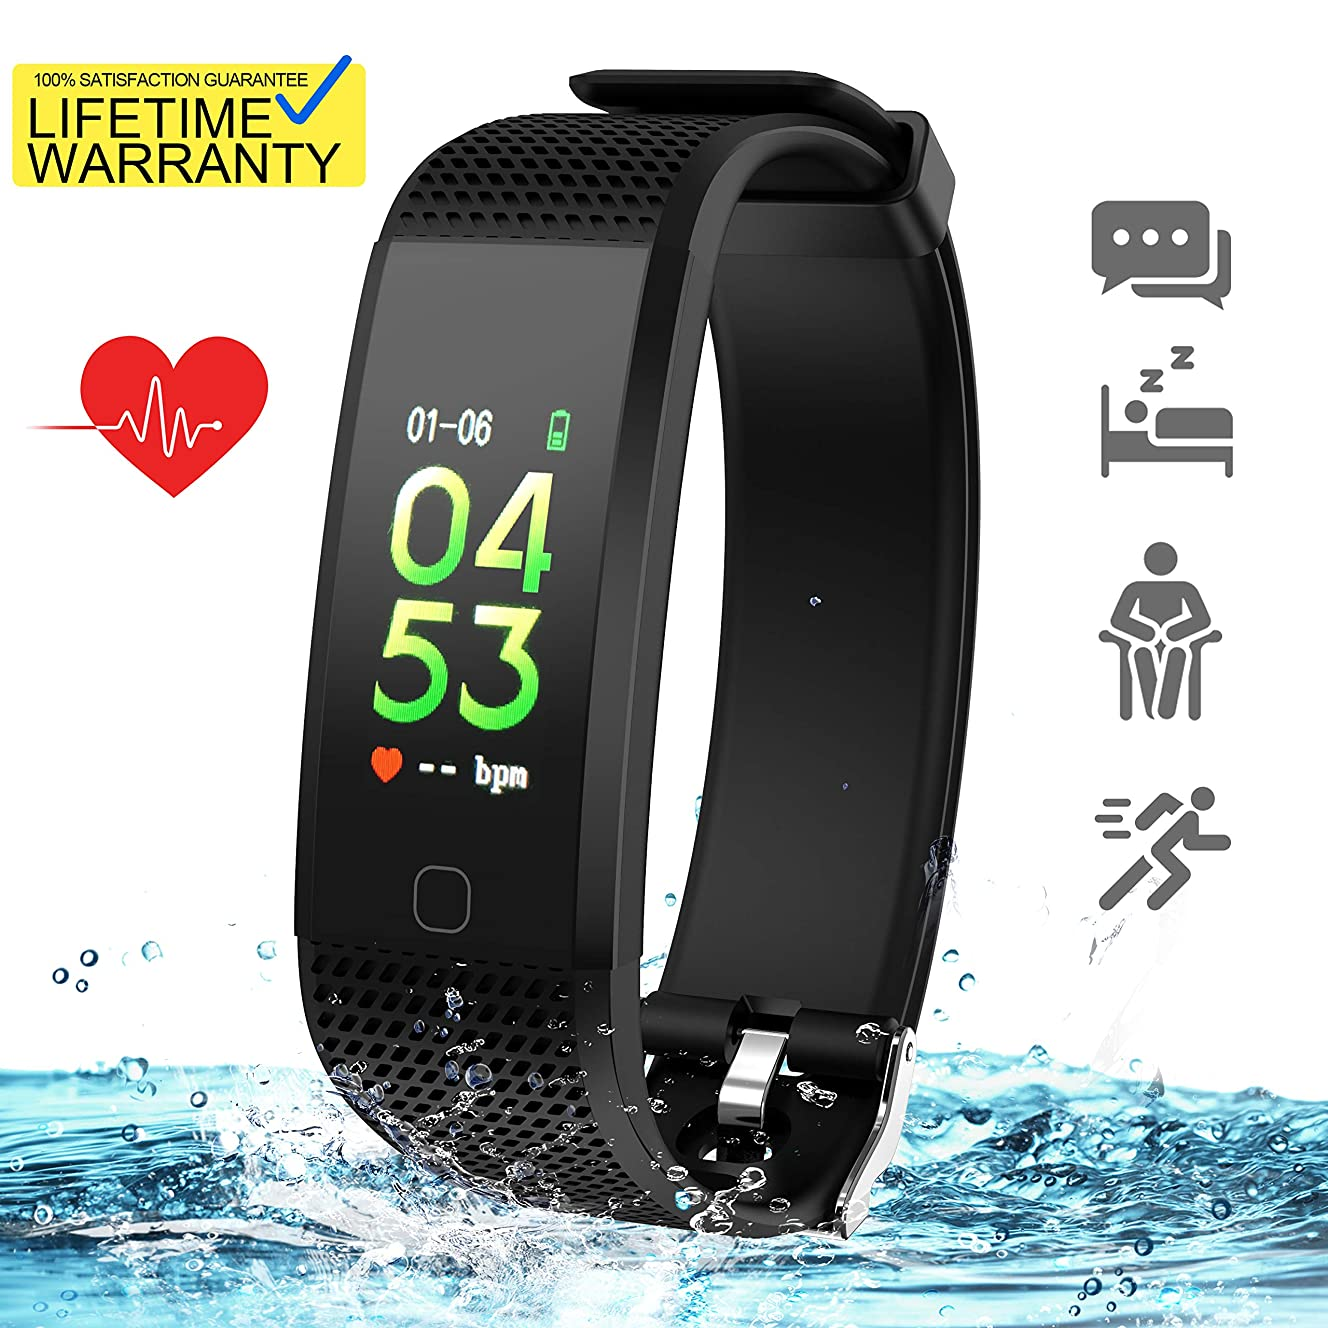 Updated 2019 Version Fitness Tracker HR, Activity Trackers Health Exercise Watch with Heart Rate and Sleep Monitor, Smart Band Calorie Counter, Step Counter, Pedometer Walking for Men Women and Kids